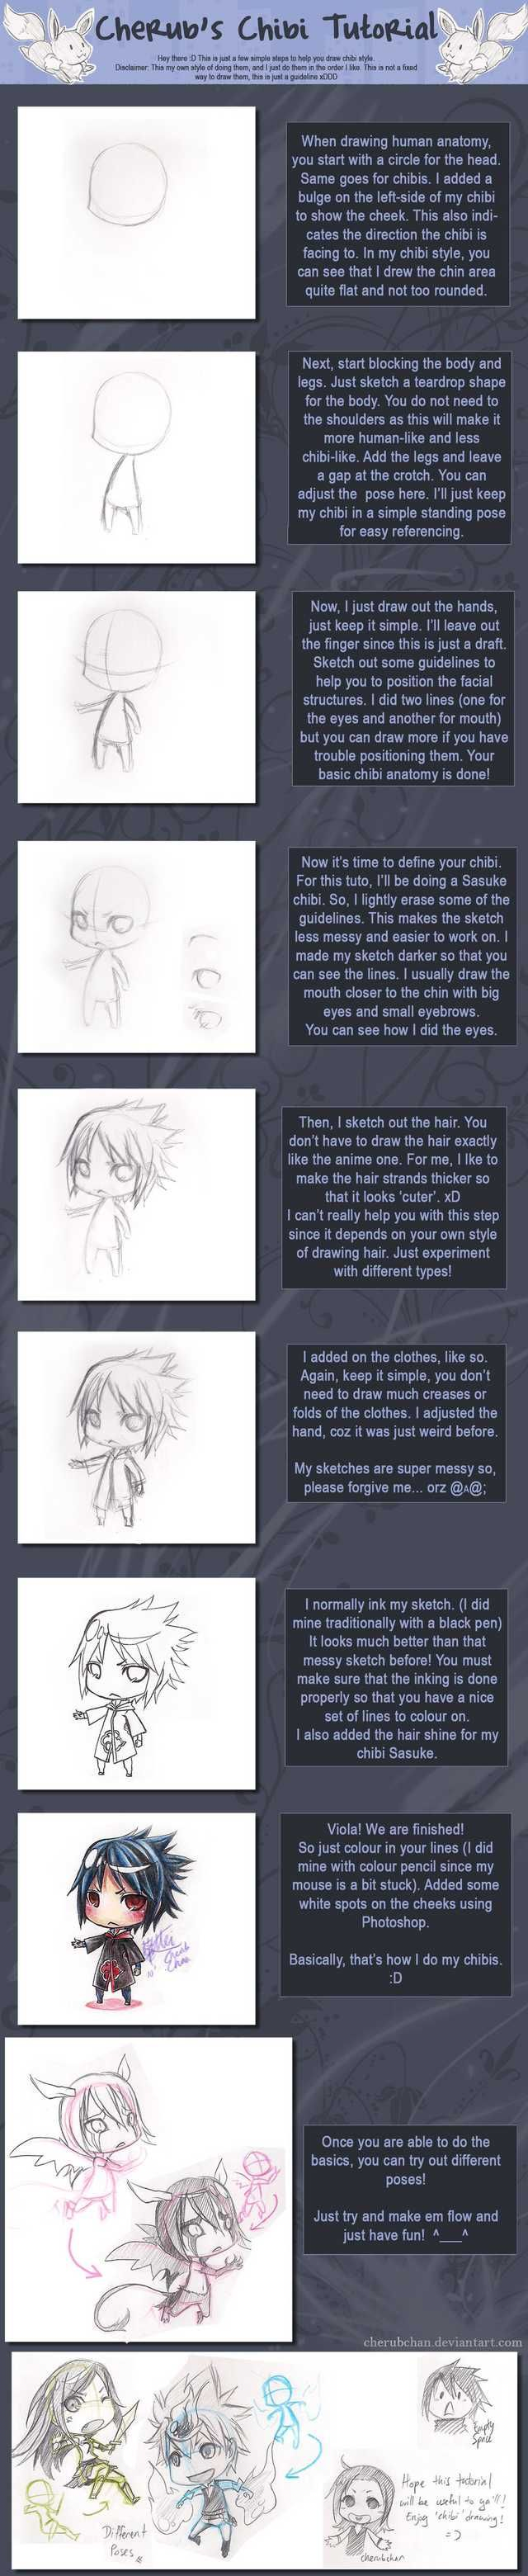 Massive Ultimate Art Reference And Tutorial Dump Chibi Drawings Anime Drawings Drawings